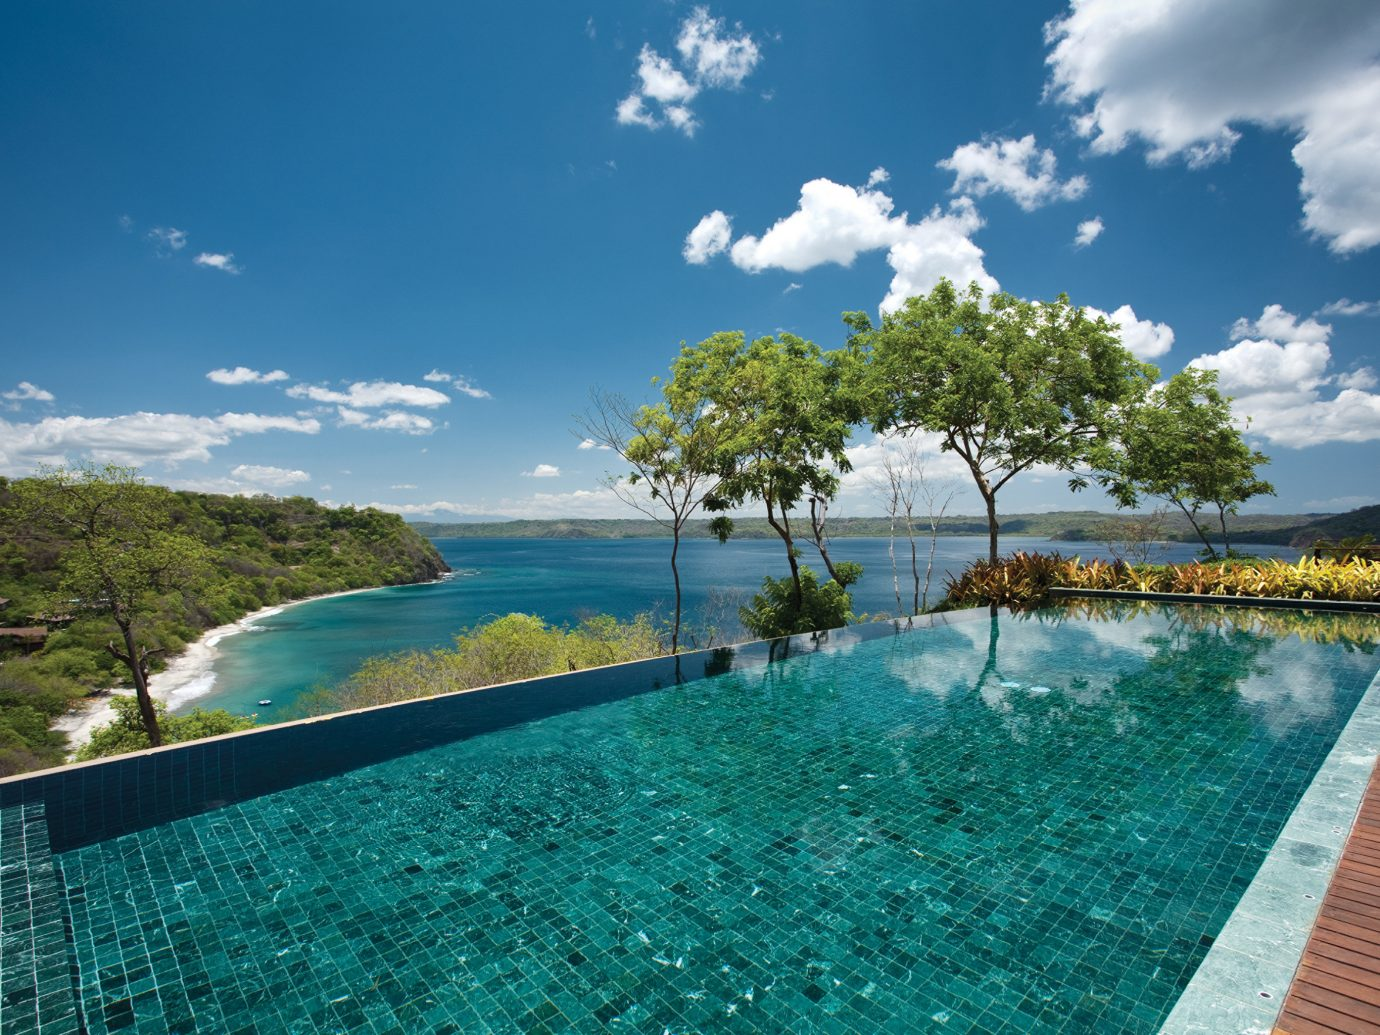 Infinity Pool At The Four Seasons Resort In Costa Rica - Province Of Guanacaste